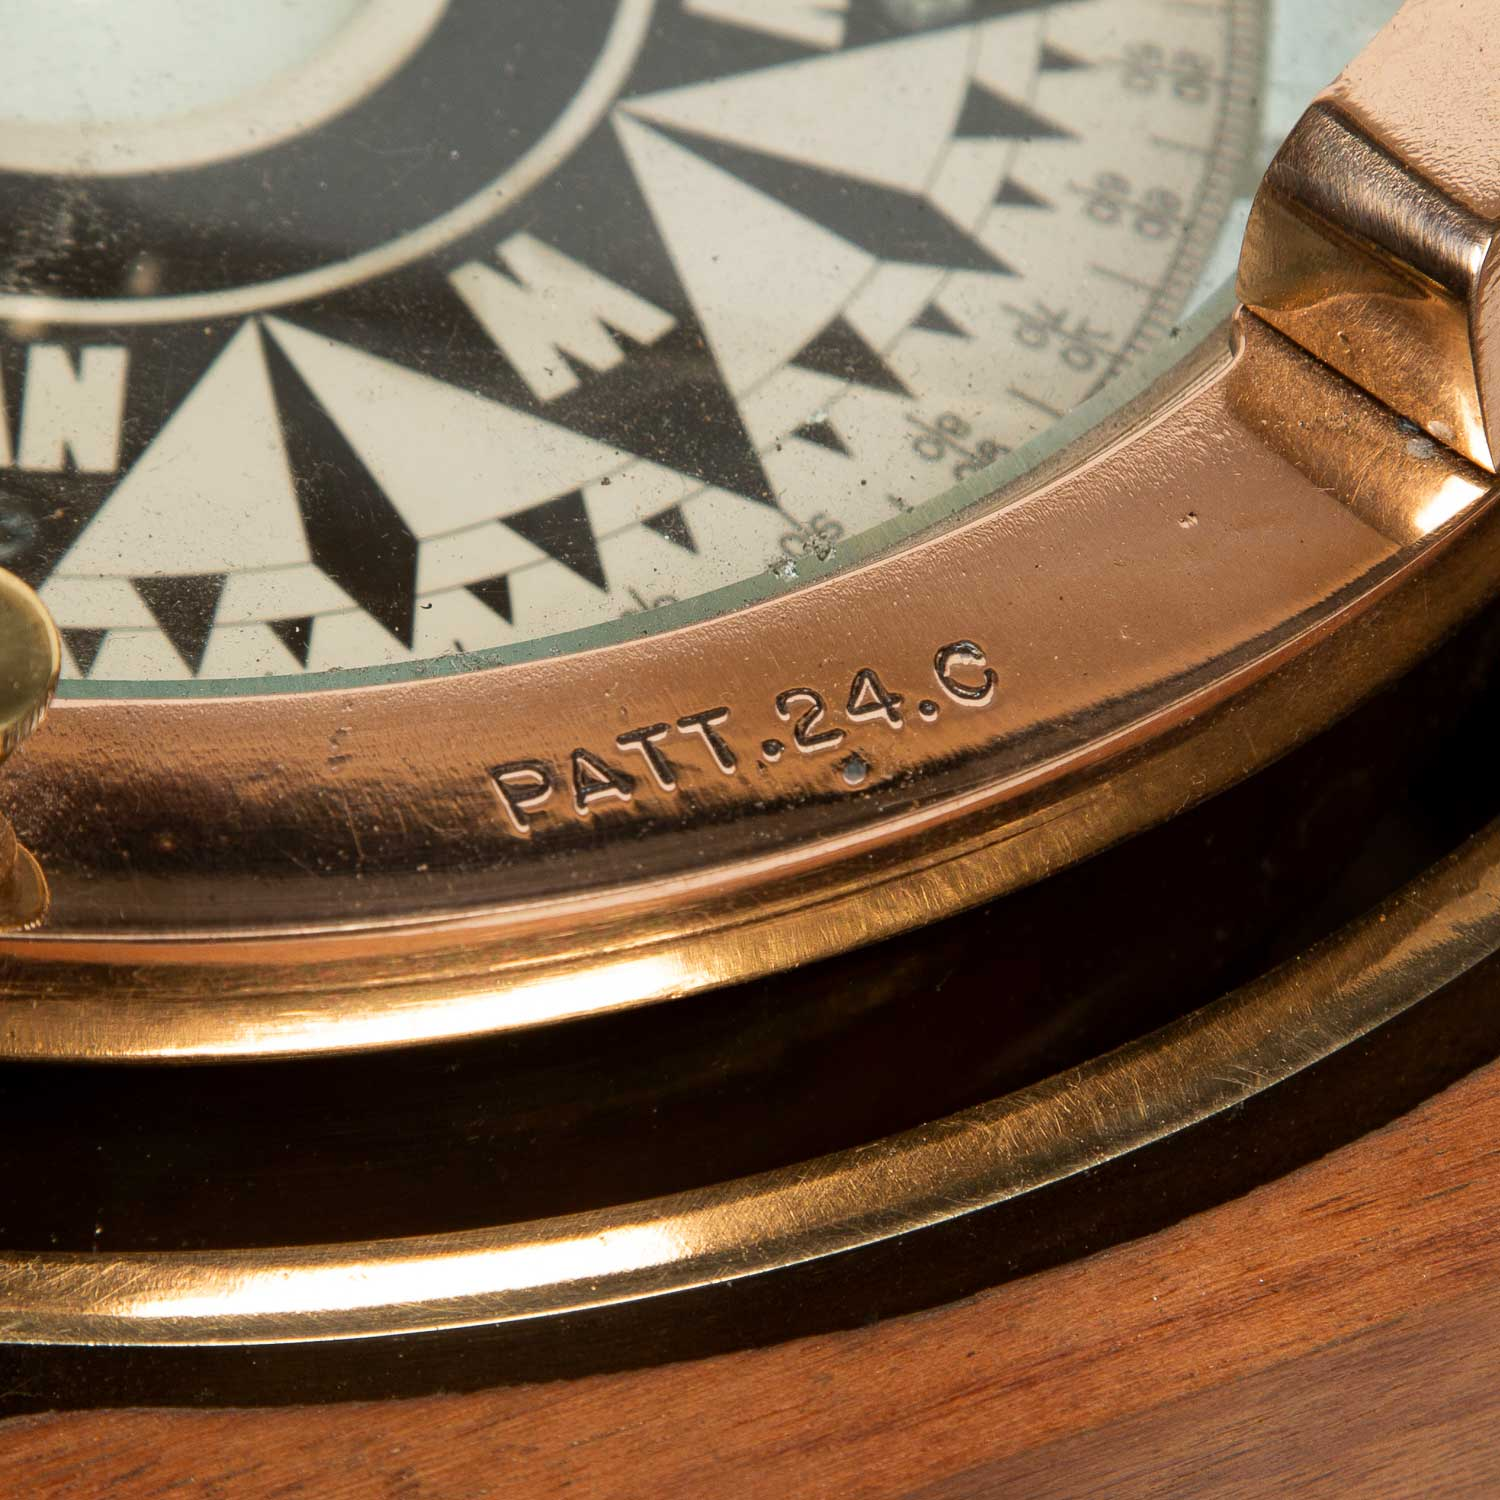 Chetwynd`s patent ship's compass